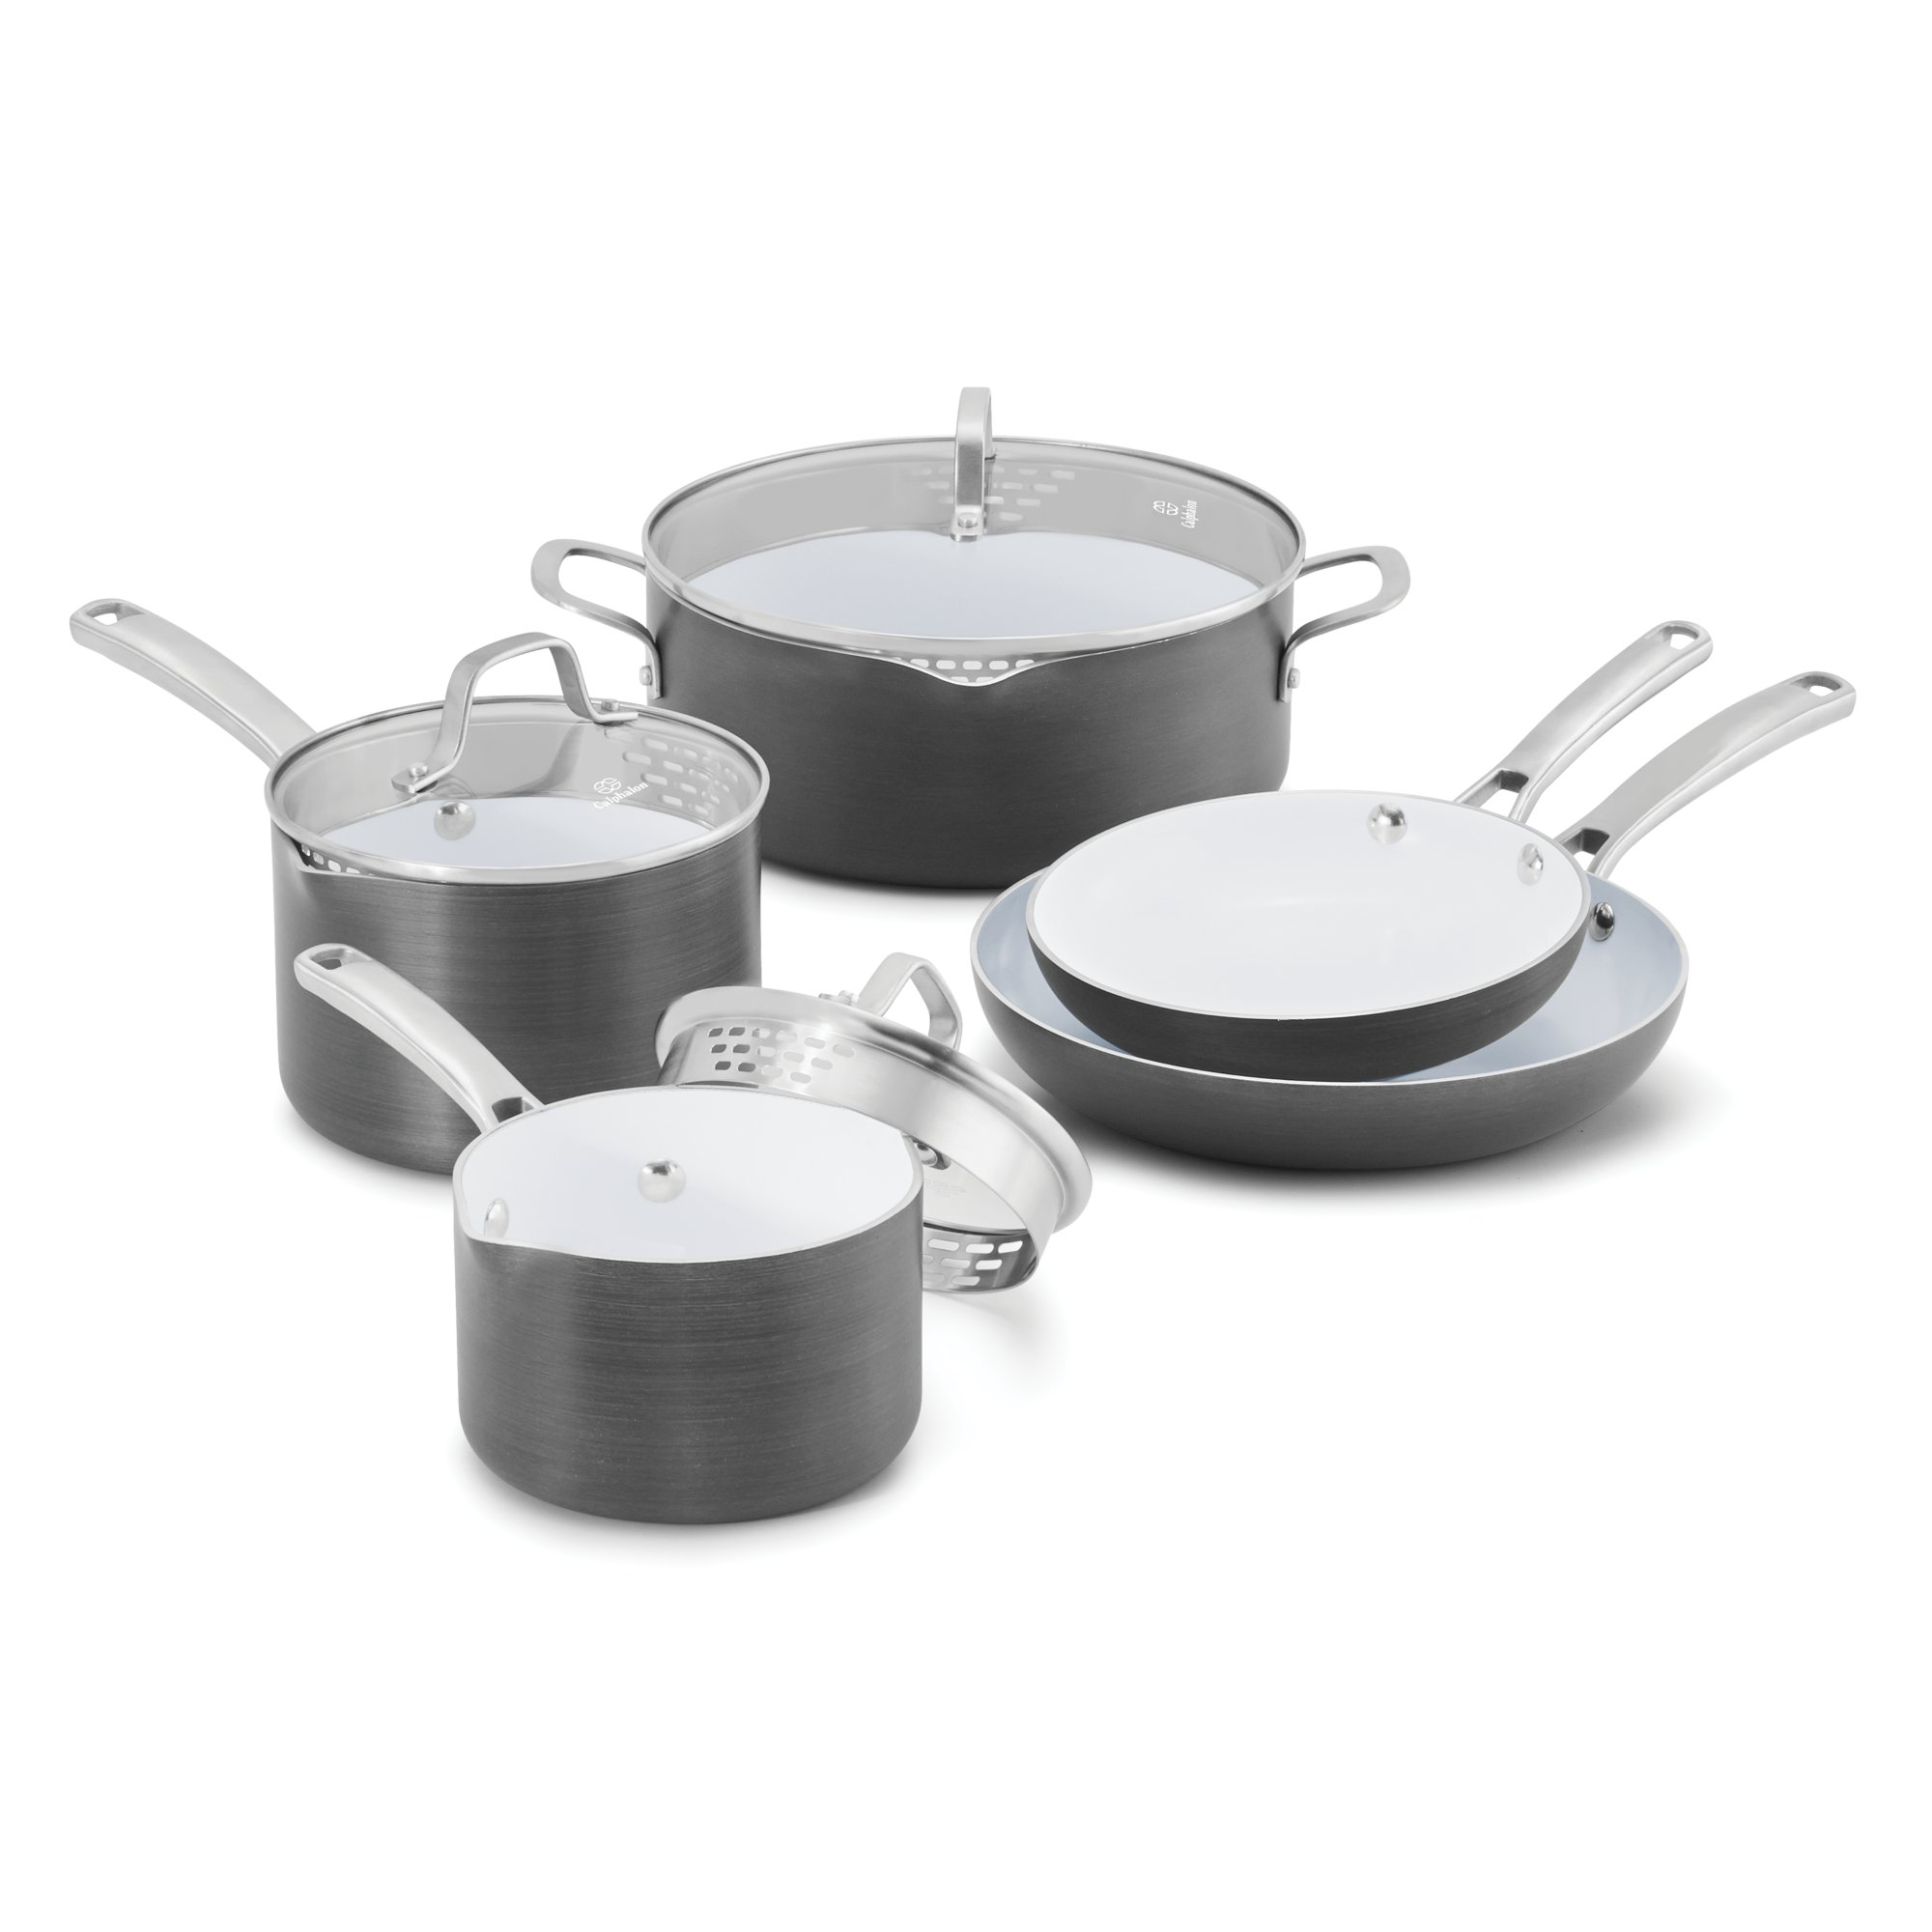 Calphalon Classic Ceramic Nonstick 8 Pc Cookware Set